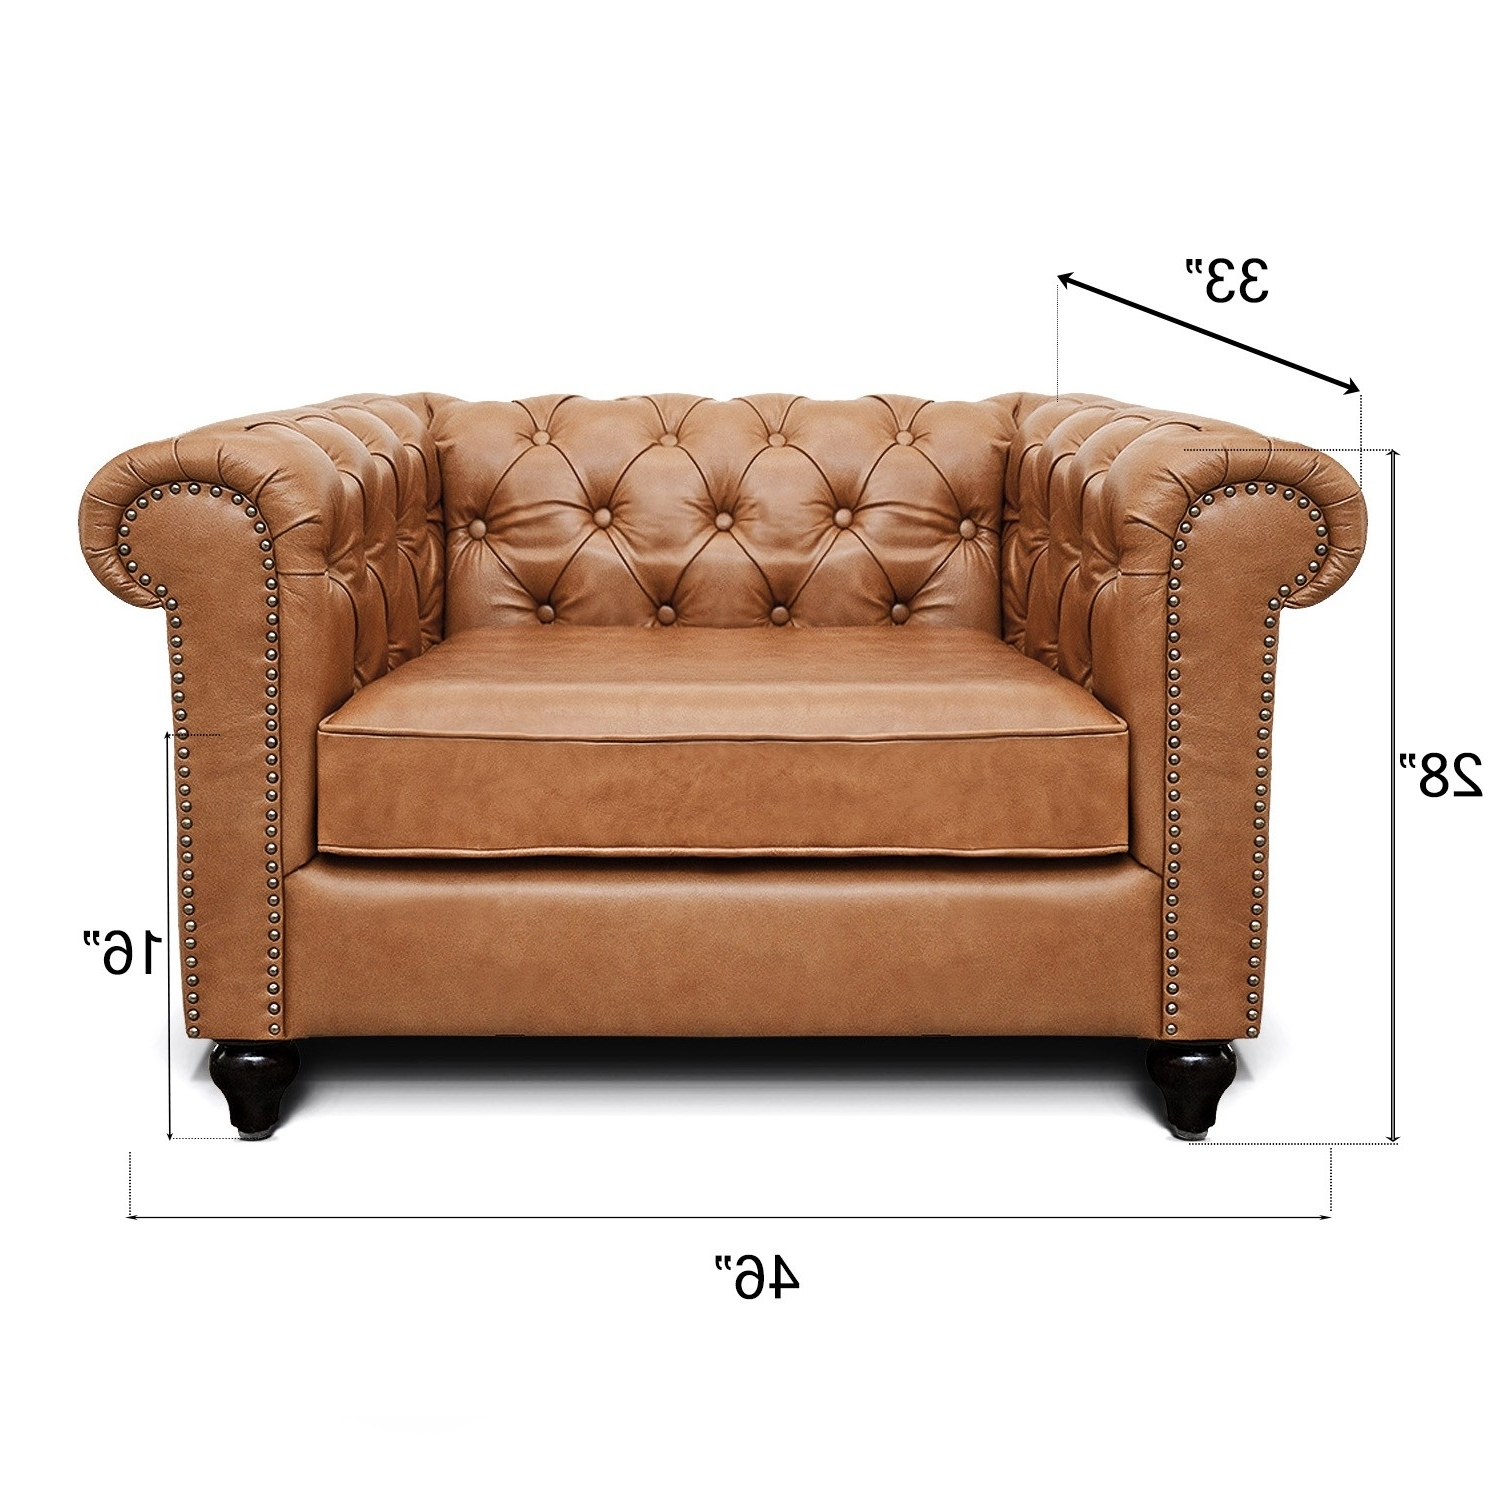 Single Seater Sofathe Yellow Door Store In 2019 Single Seat Sofa Chairs (View 7 of 20)